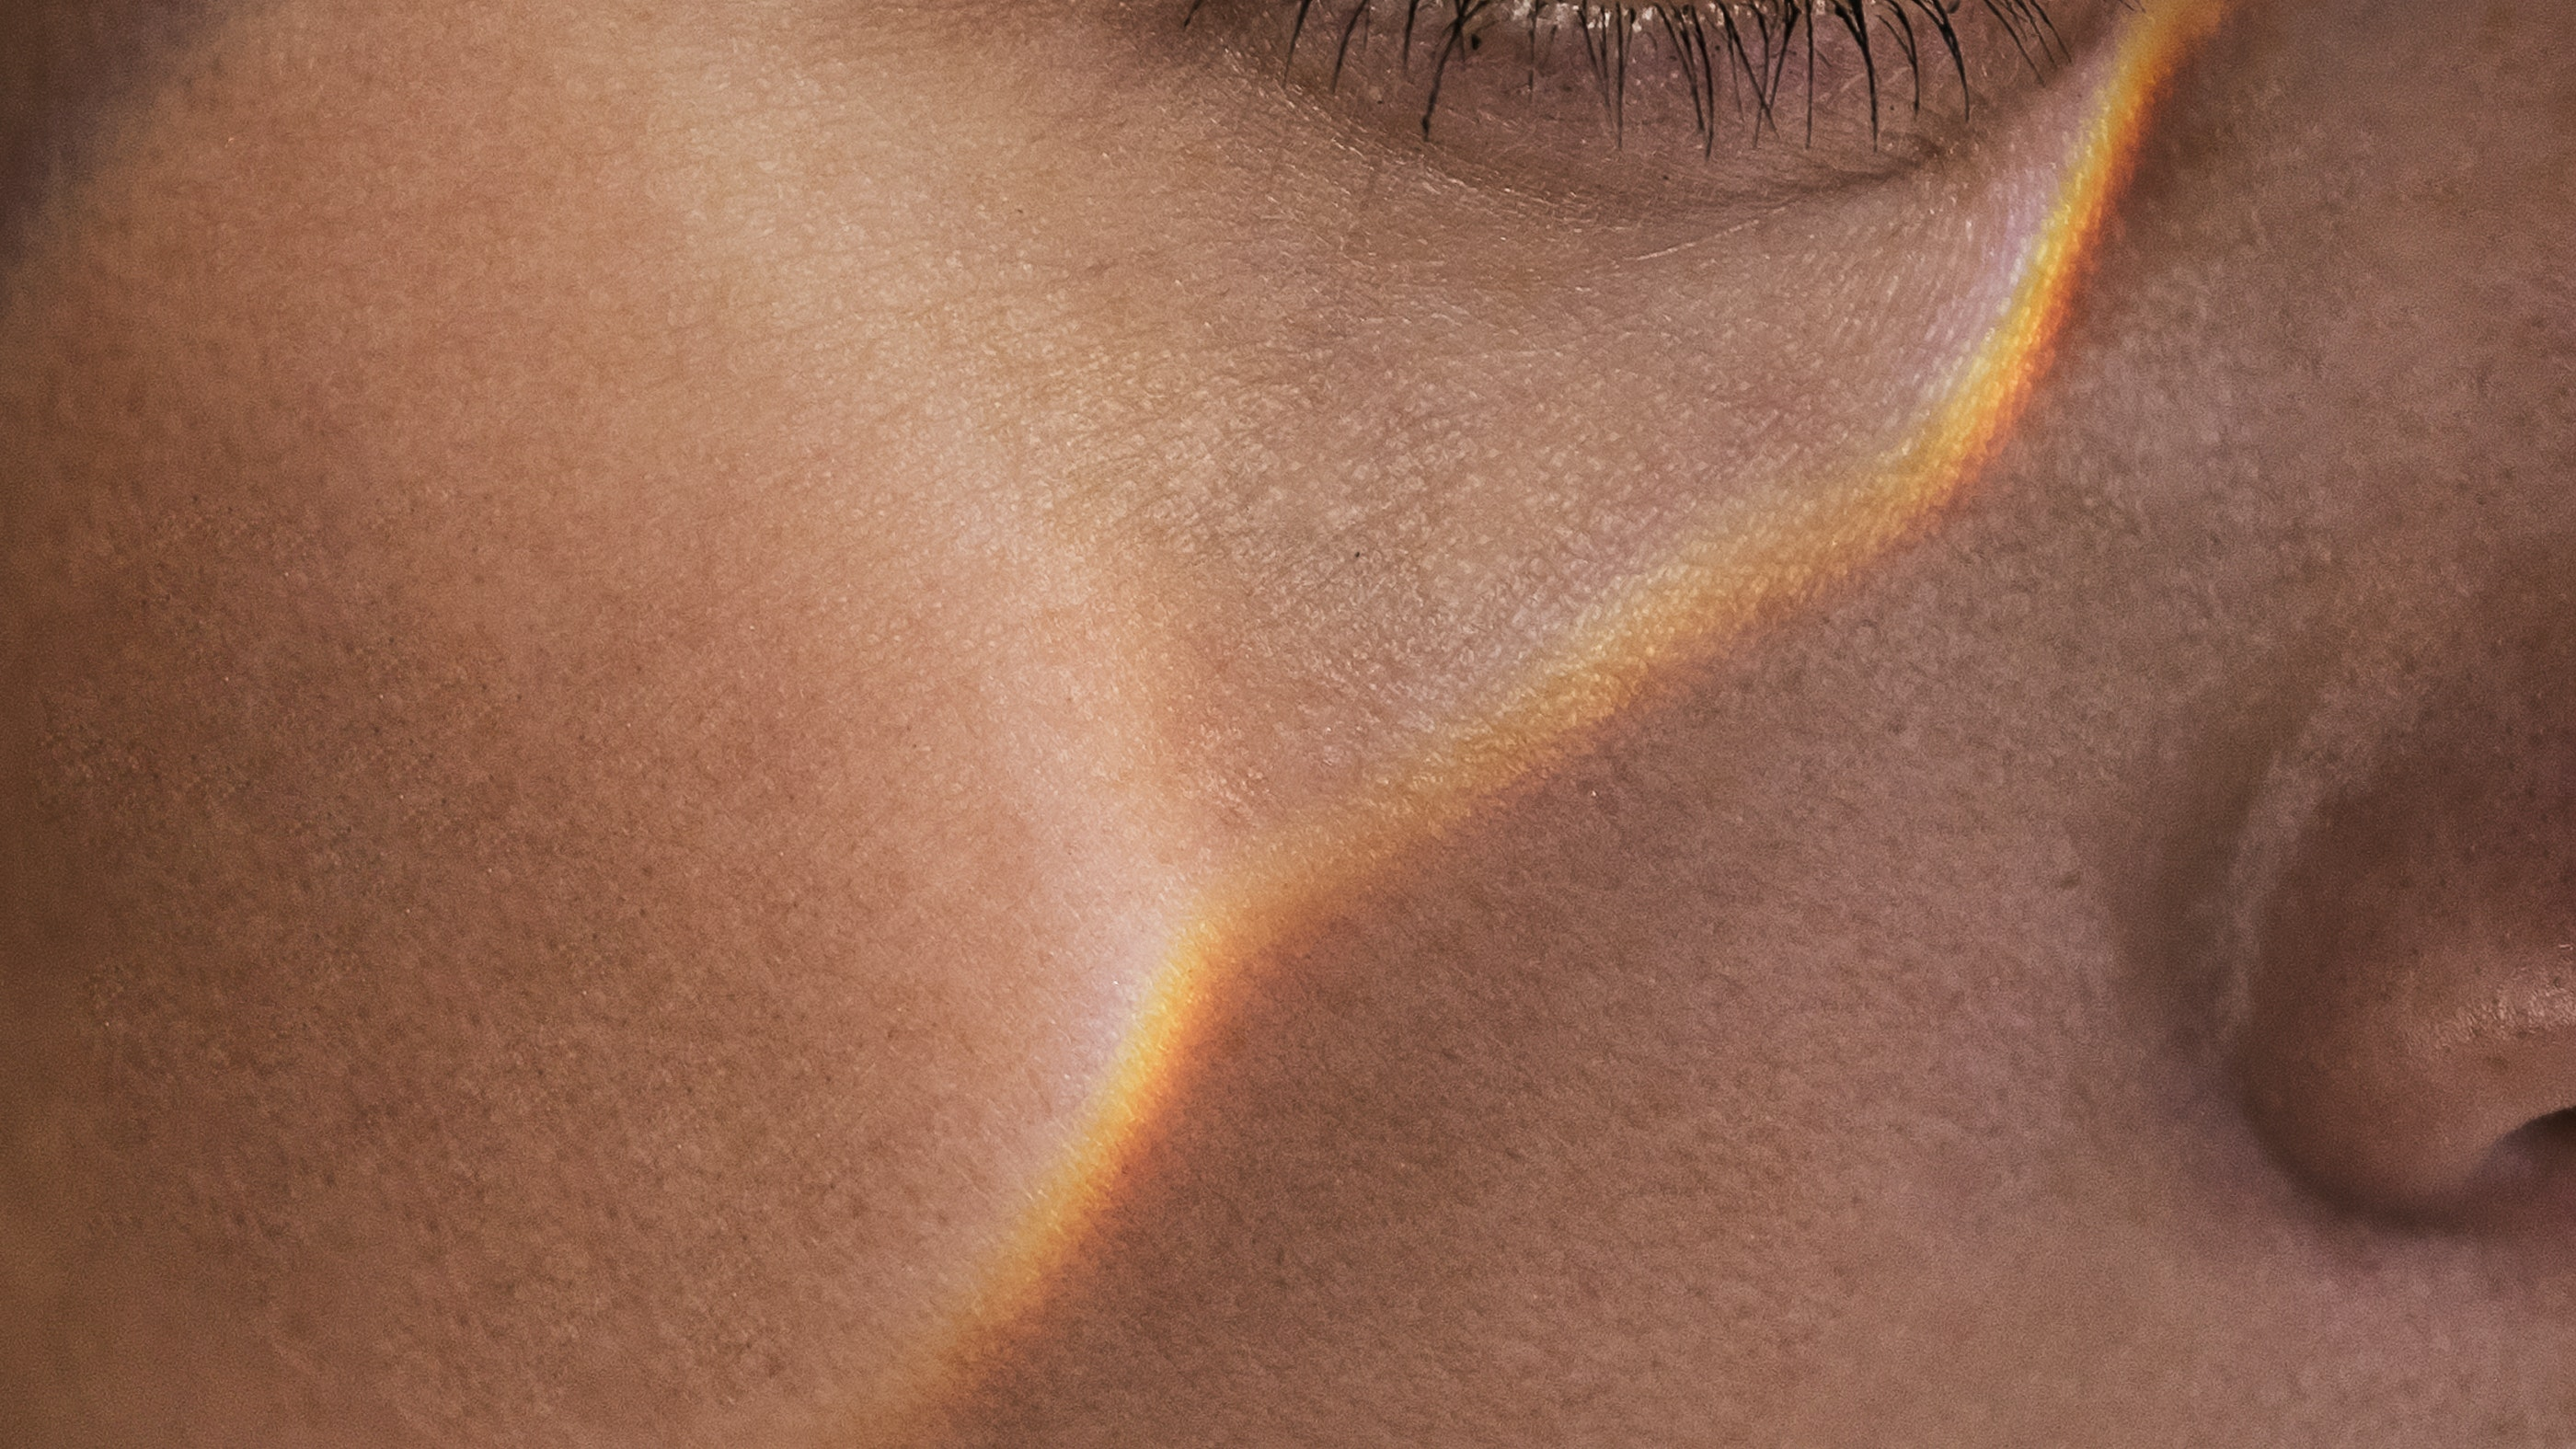 6 Lasers That Can Give You Better Skin — Fast